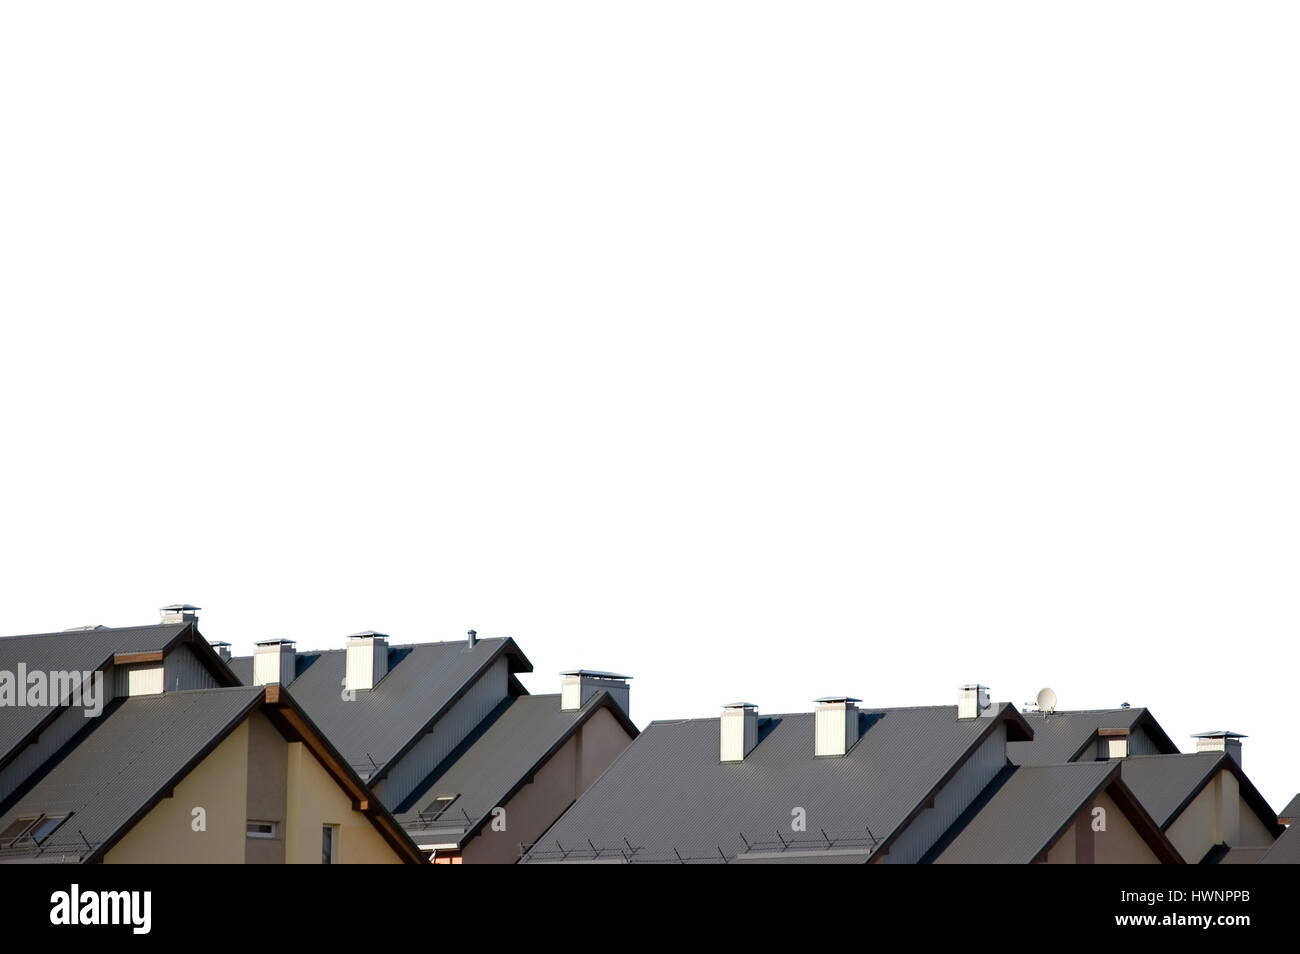 Rowhouse row house apartments roofs, isolated condos rooftops panorama - Stock Image